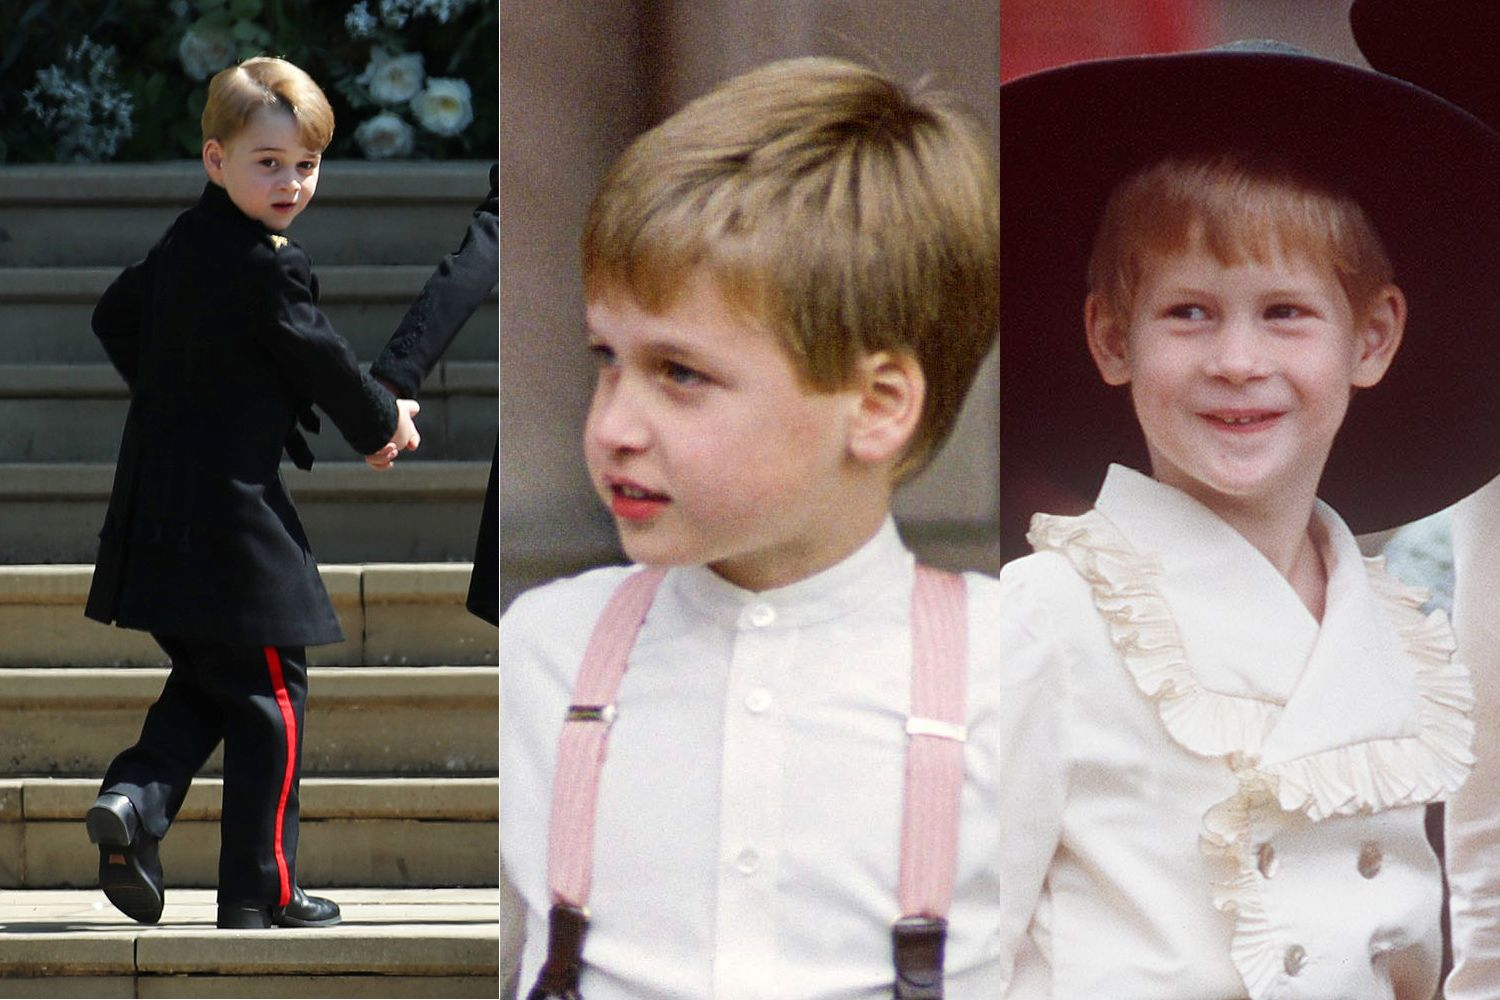 Prince George Looks Exactly Like A Young WilliamHarry At Royal Wedding